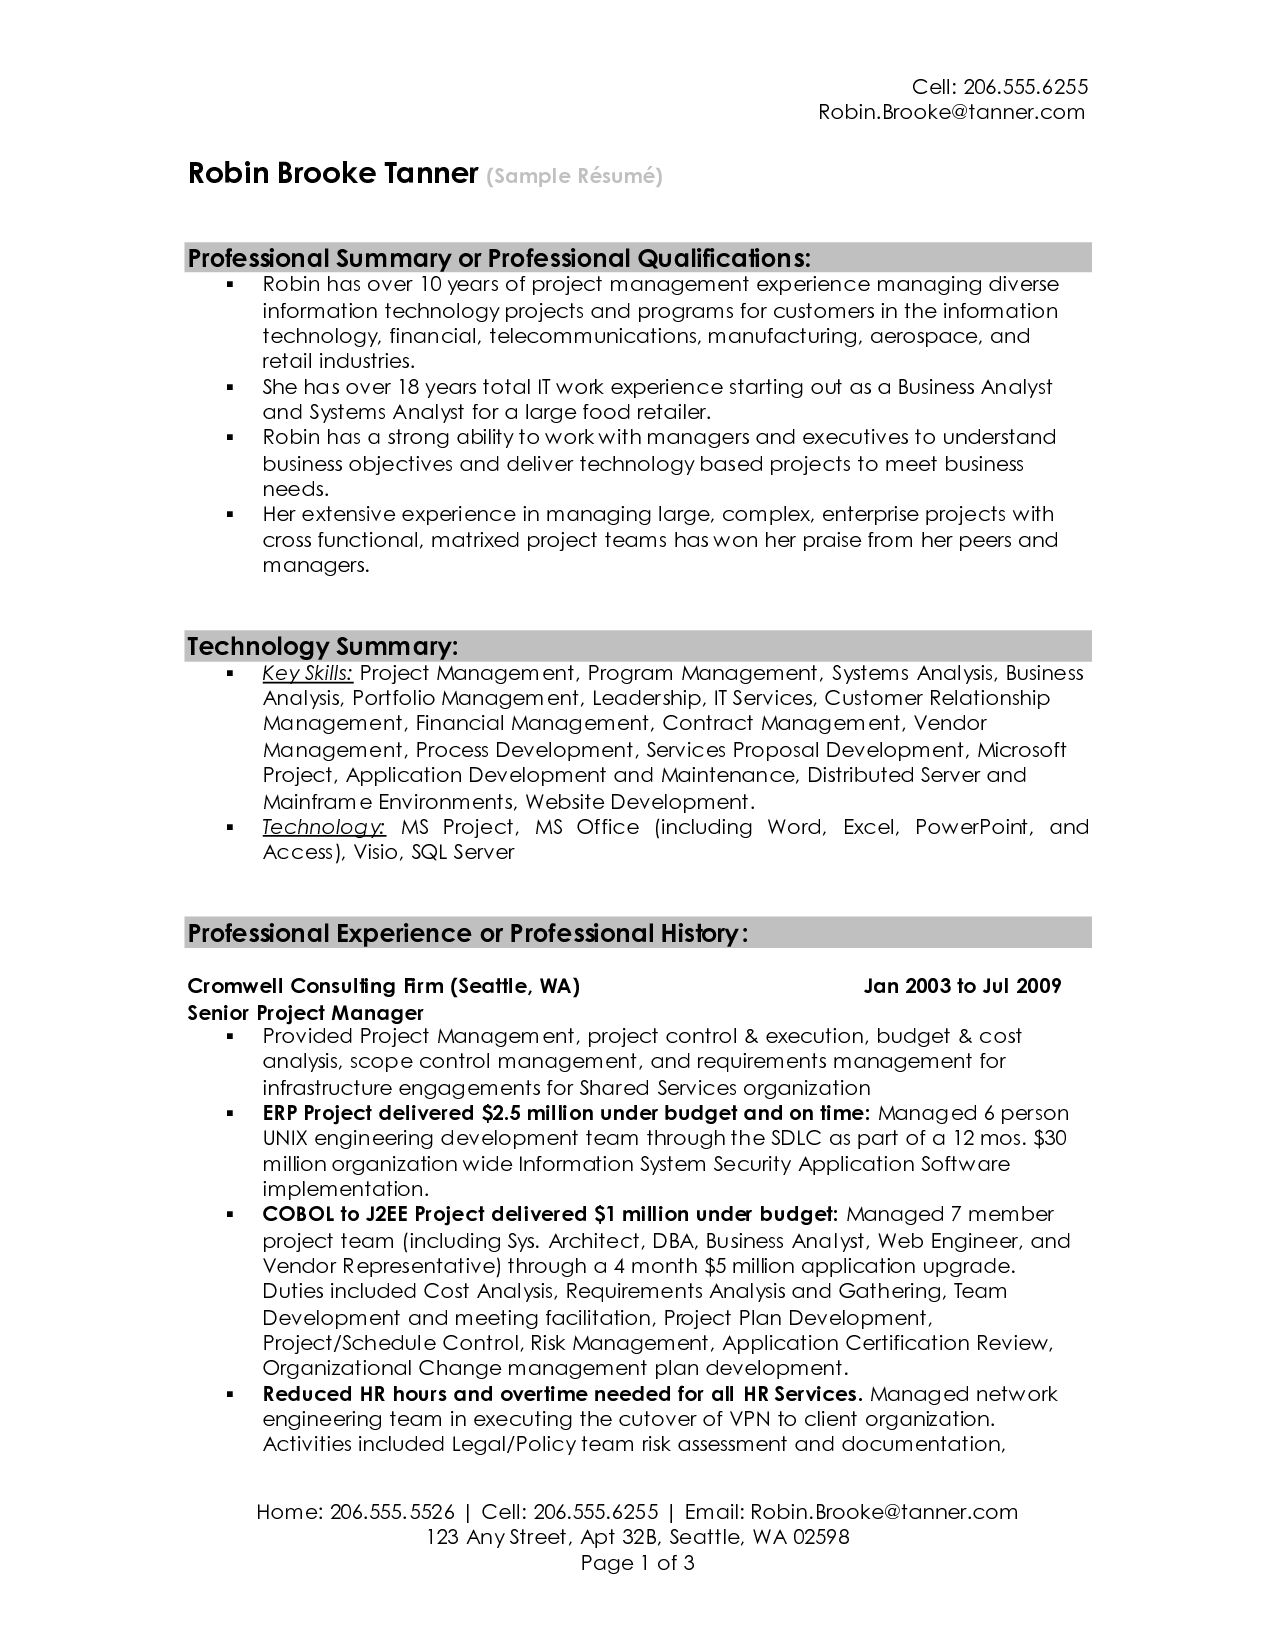 professional summary resume examples professional resume